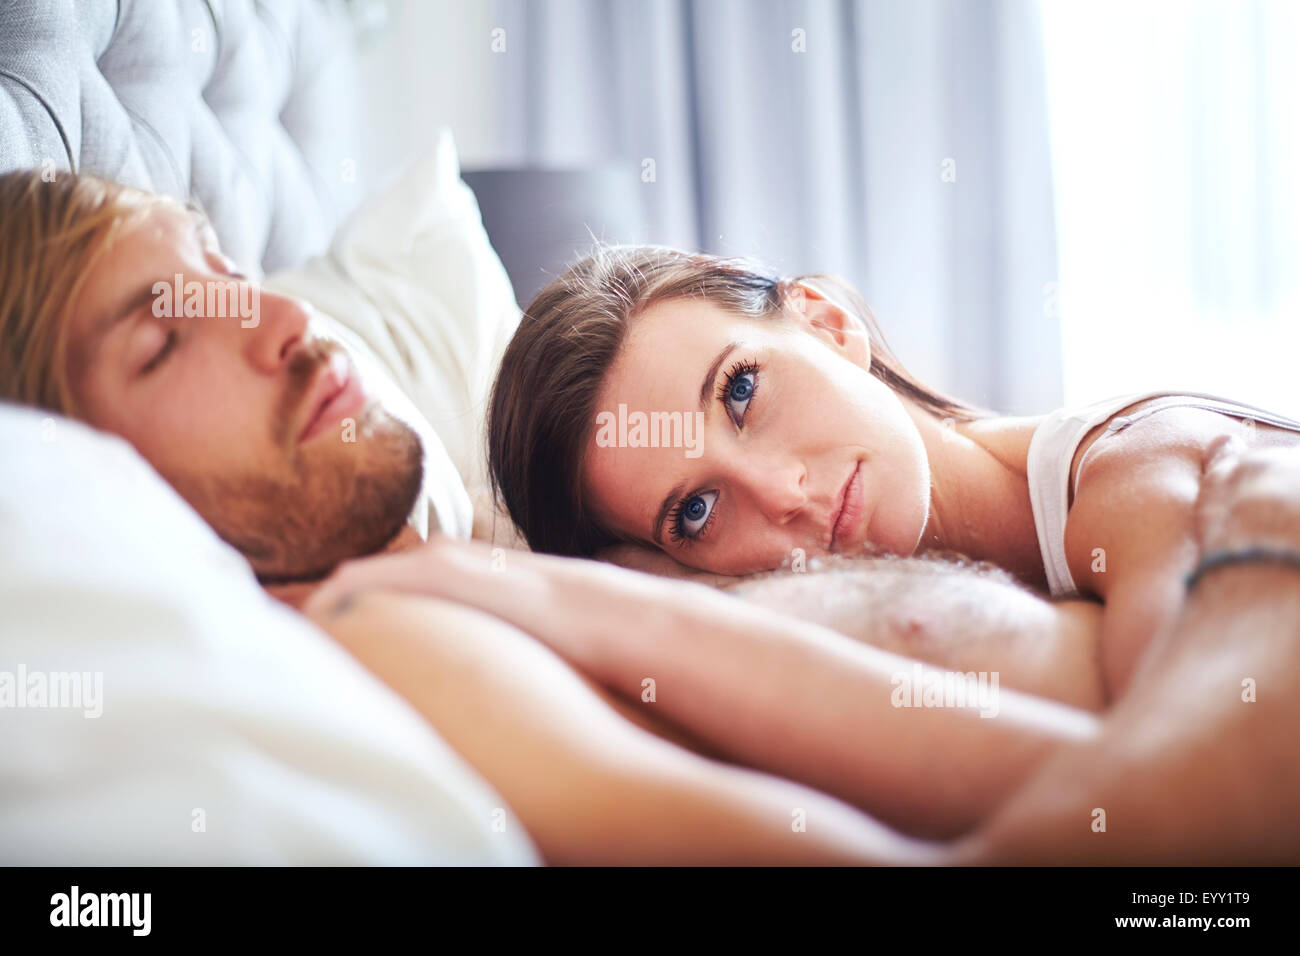 Man and girl in bed